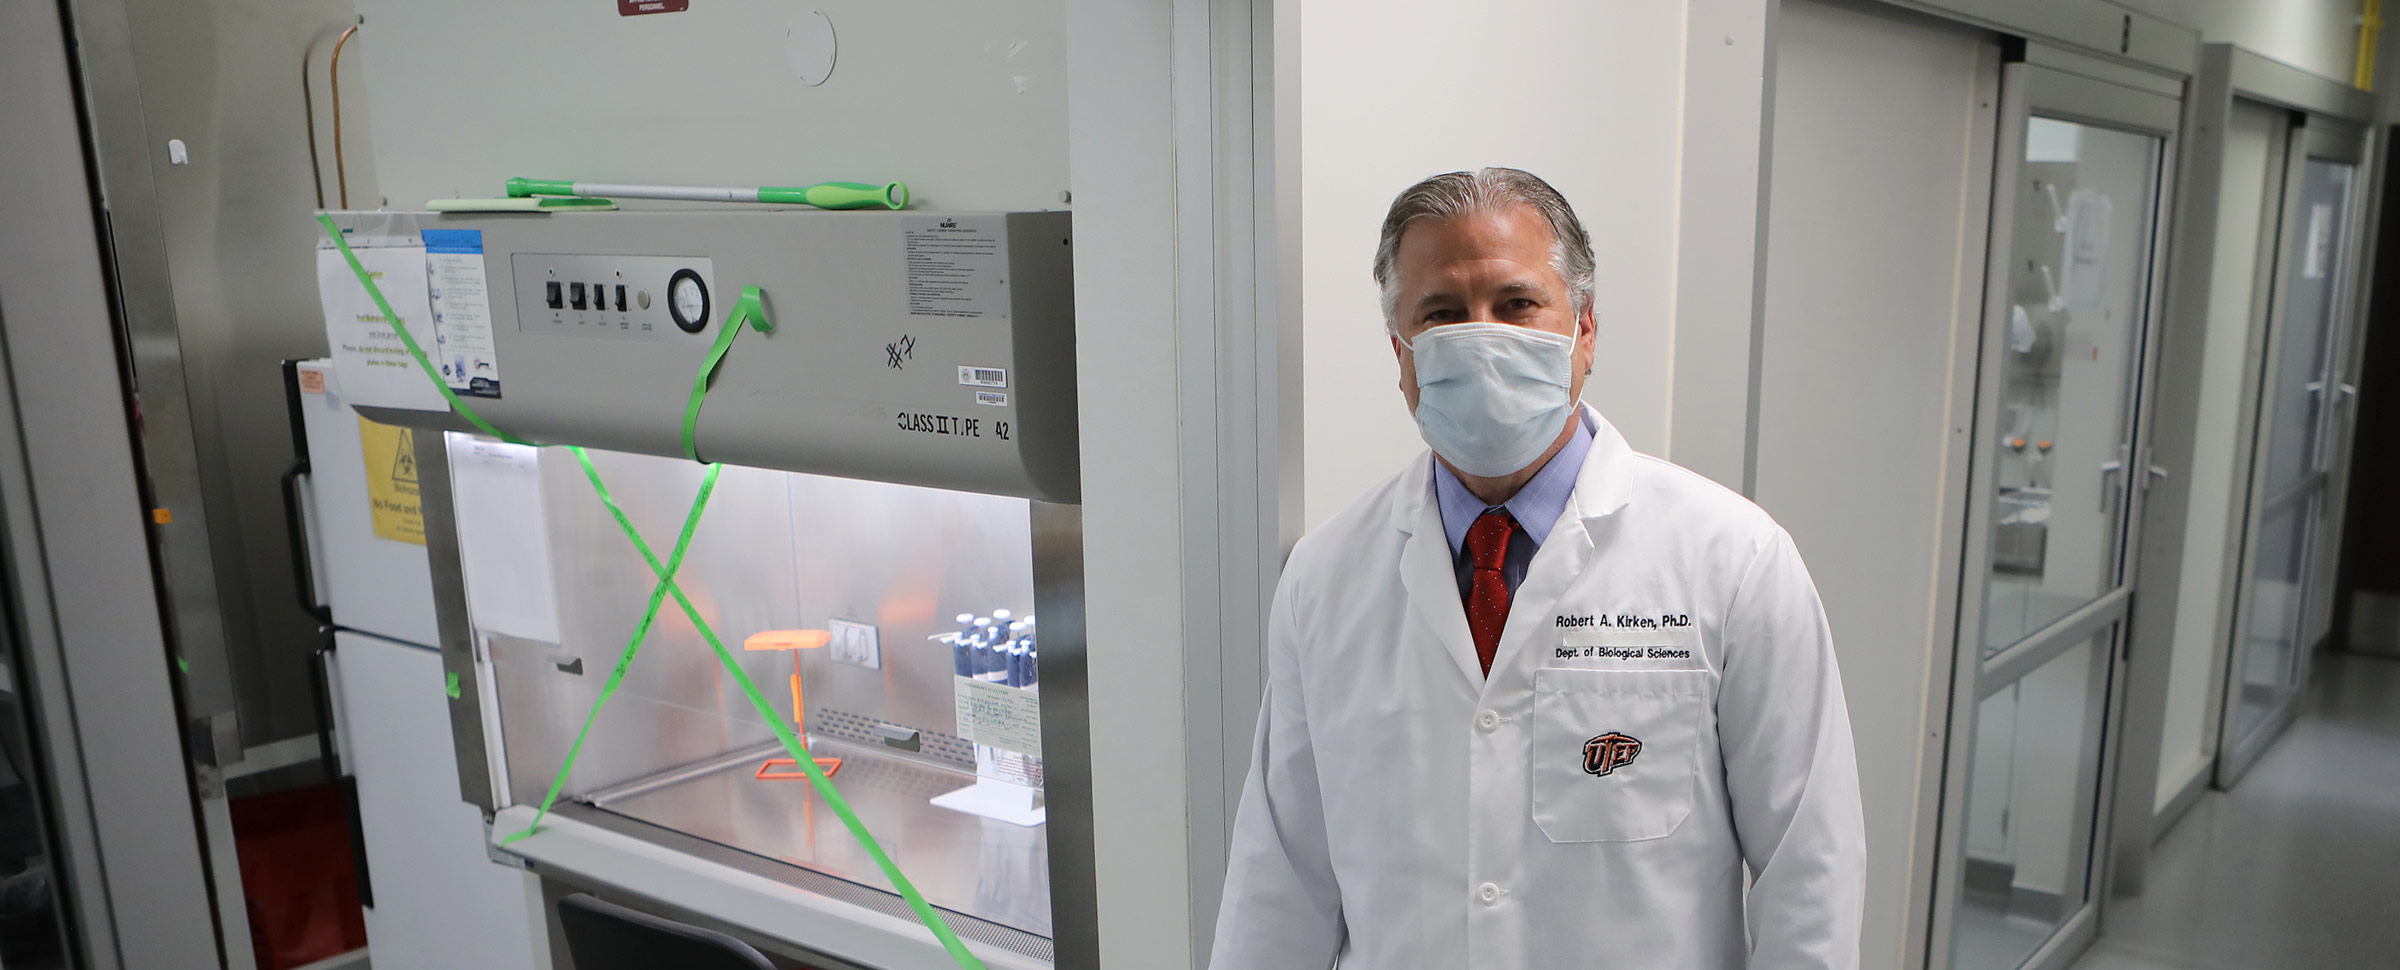 UTEP to Use University Labs for City Coronavirus Testing